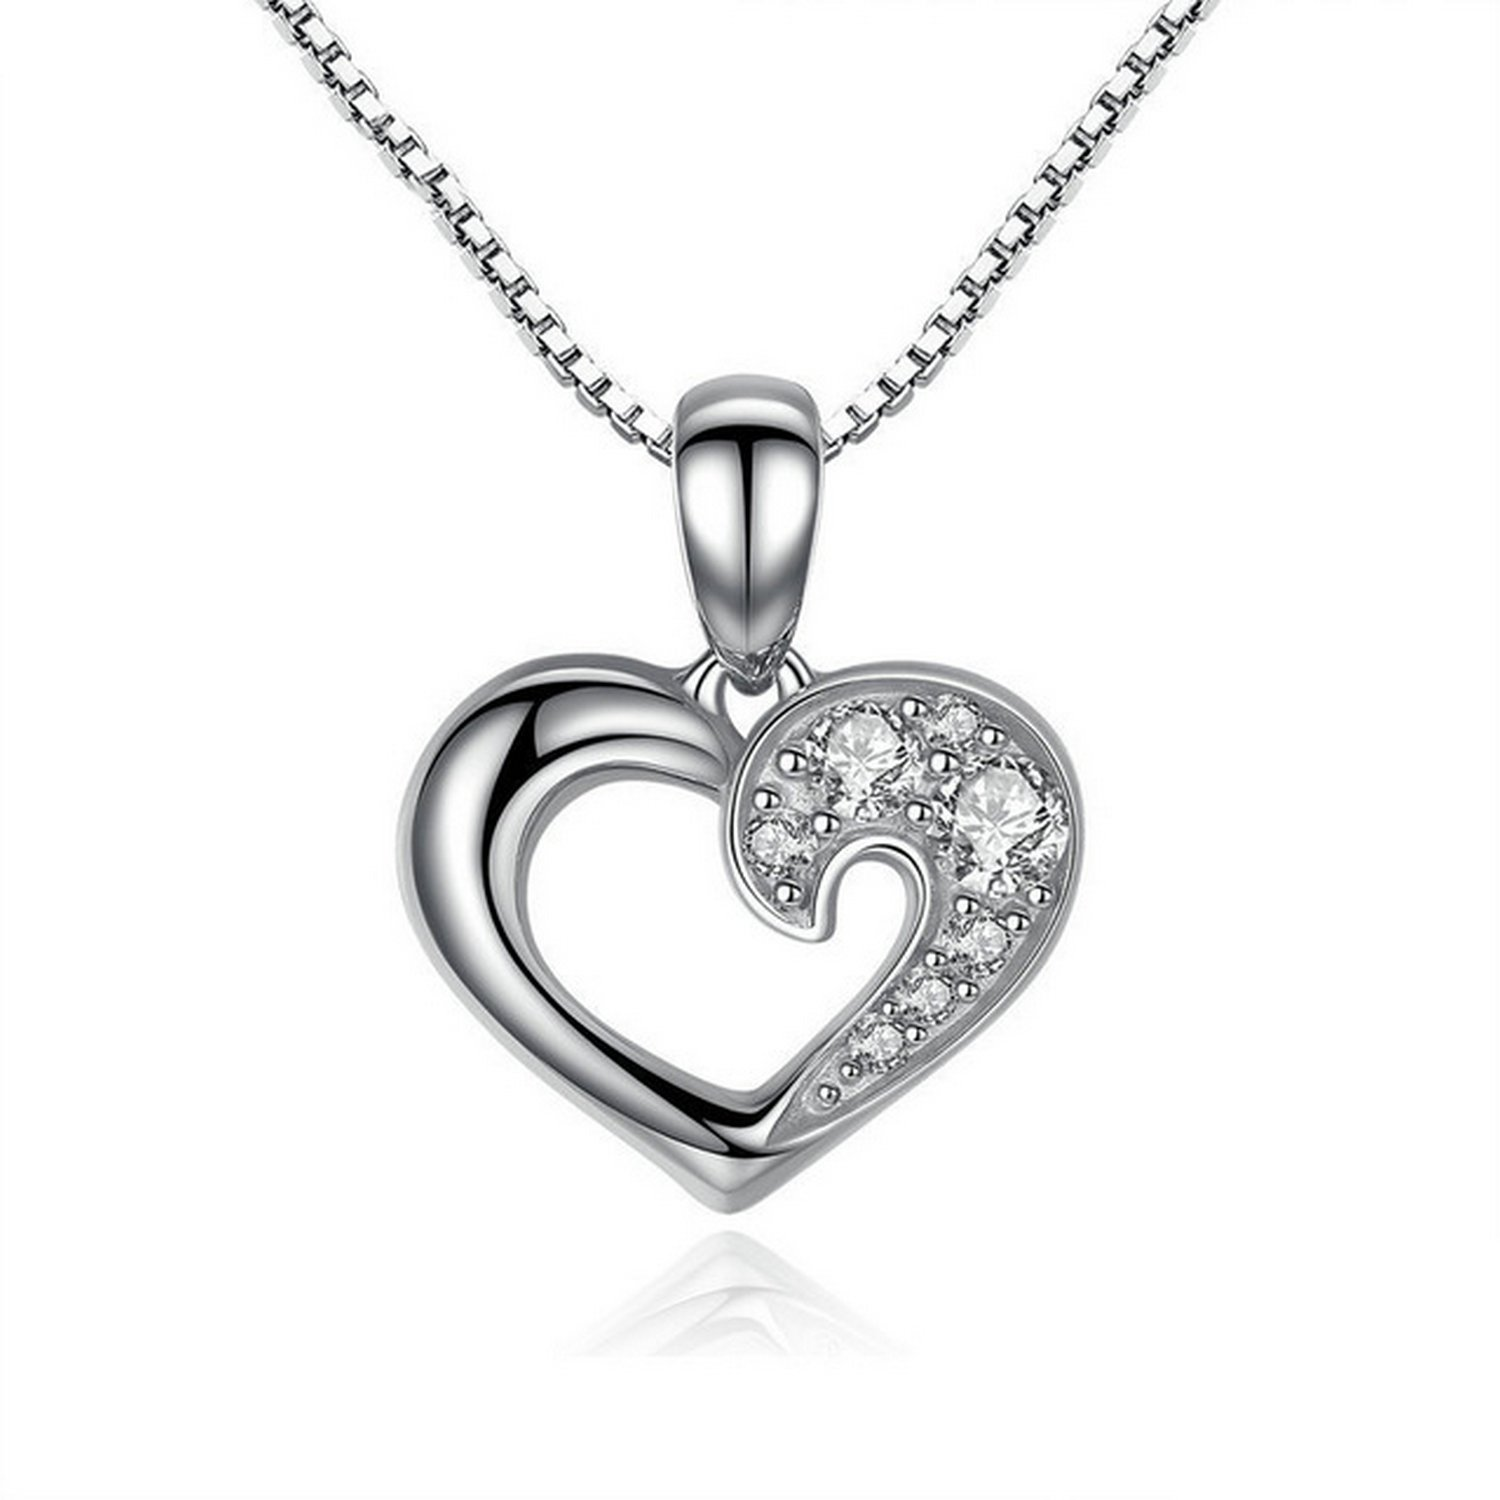 CS-DB Jewelry Silver Our Hearts /& Love Chain Charm Pendants Necklaces